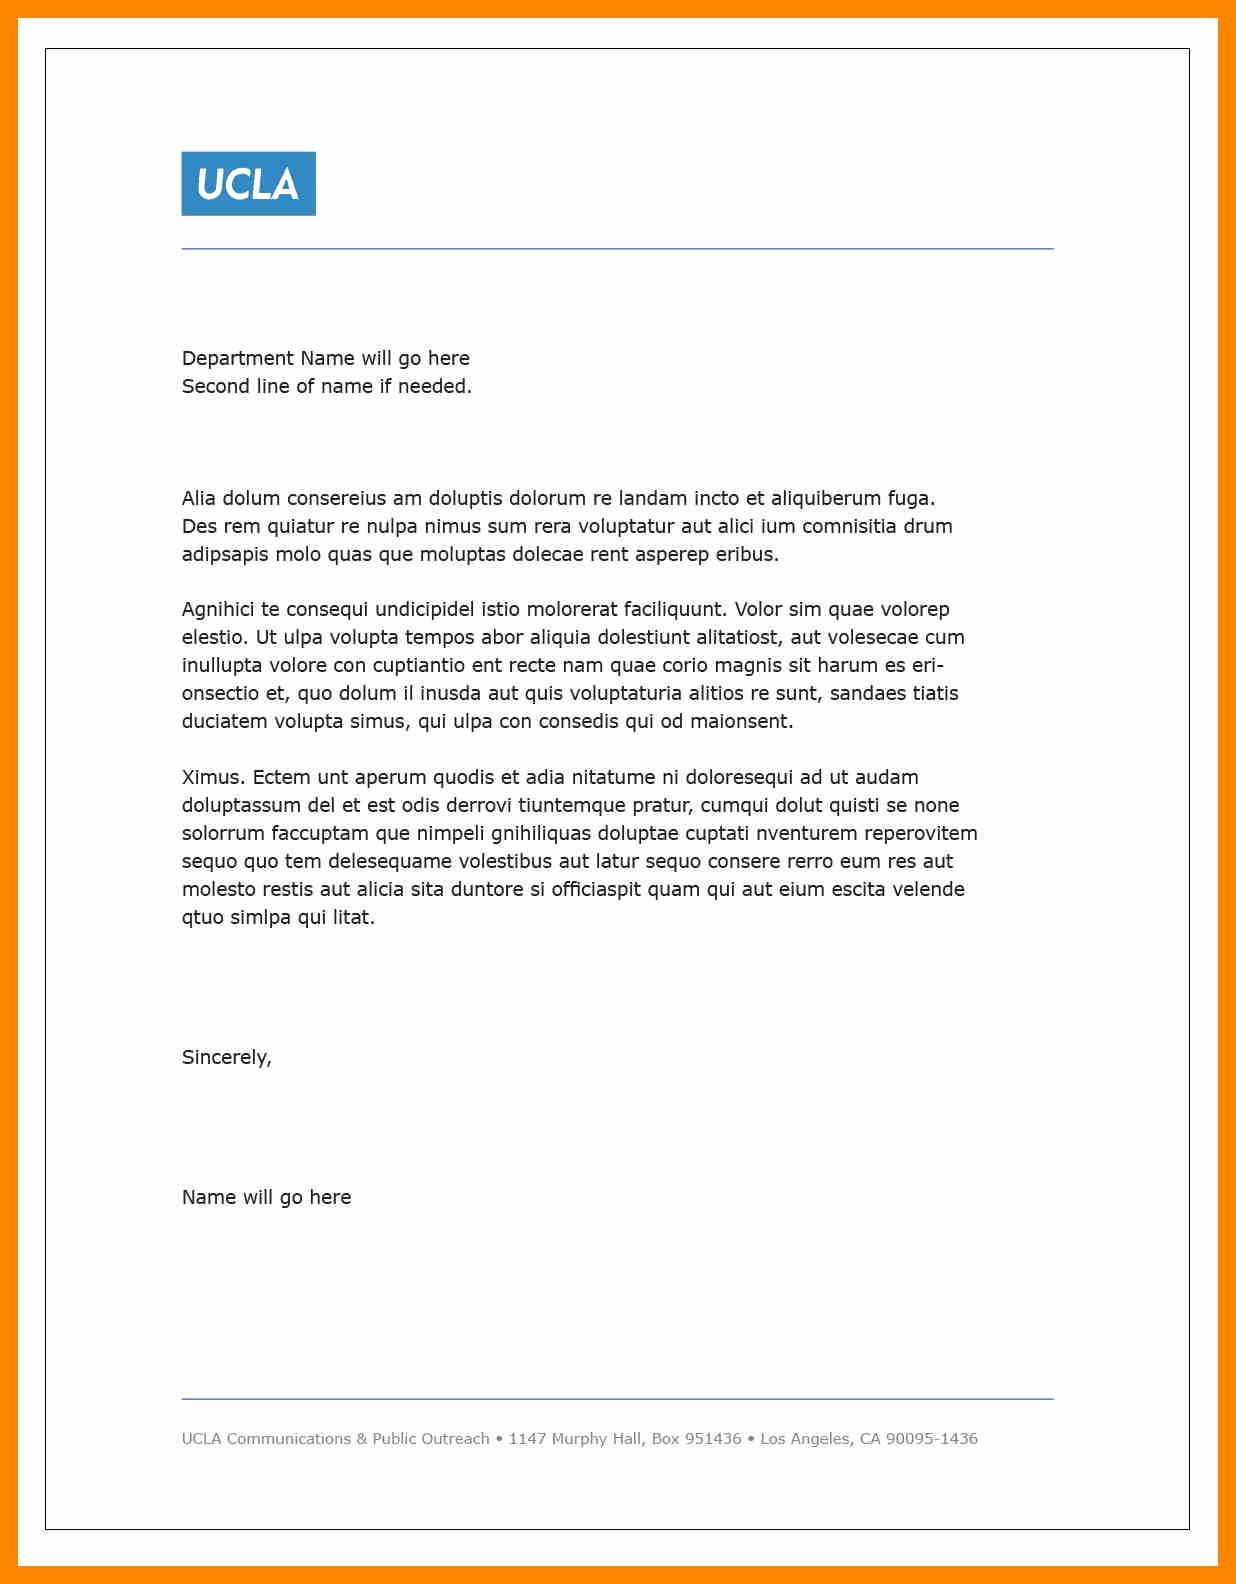 Job Application Cover Letter Template Word - Cover Letter Examples for Job Application New Sample Job Cover